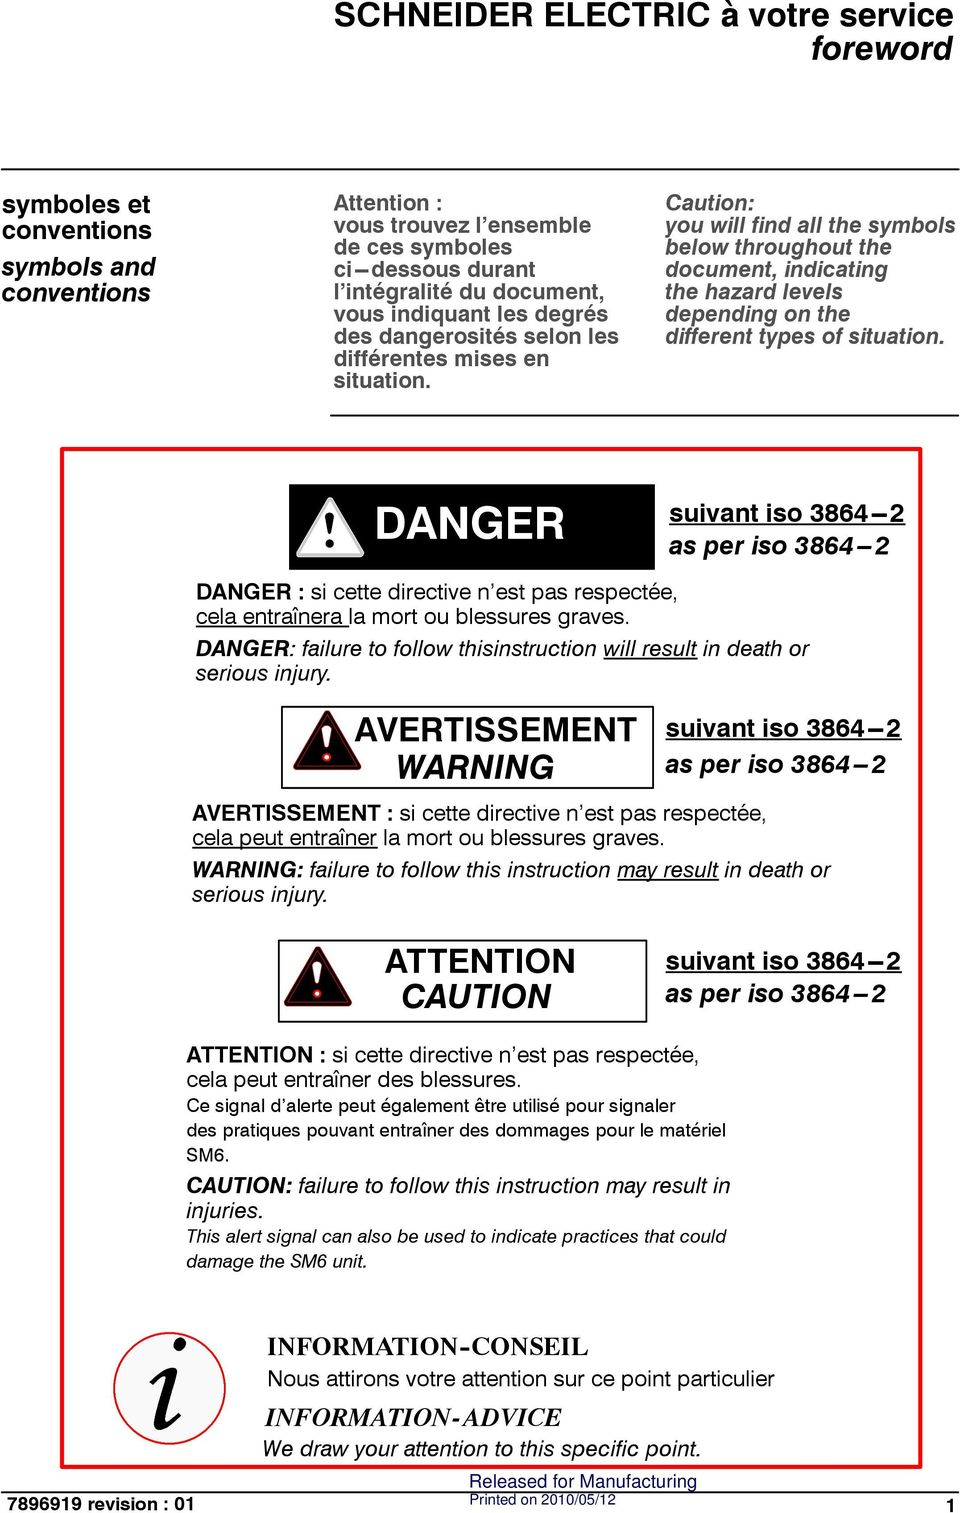 aution: you will find all the symbols below throughout the document, indicating the hazard levels depending on the different types of situation.